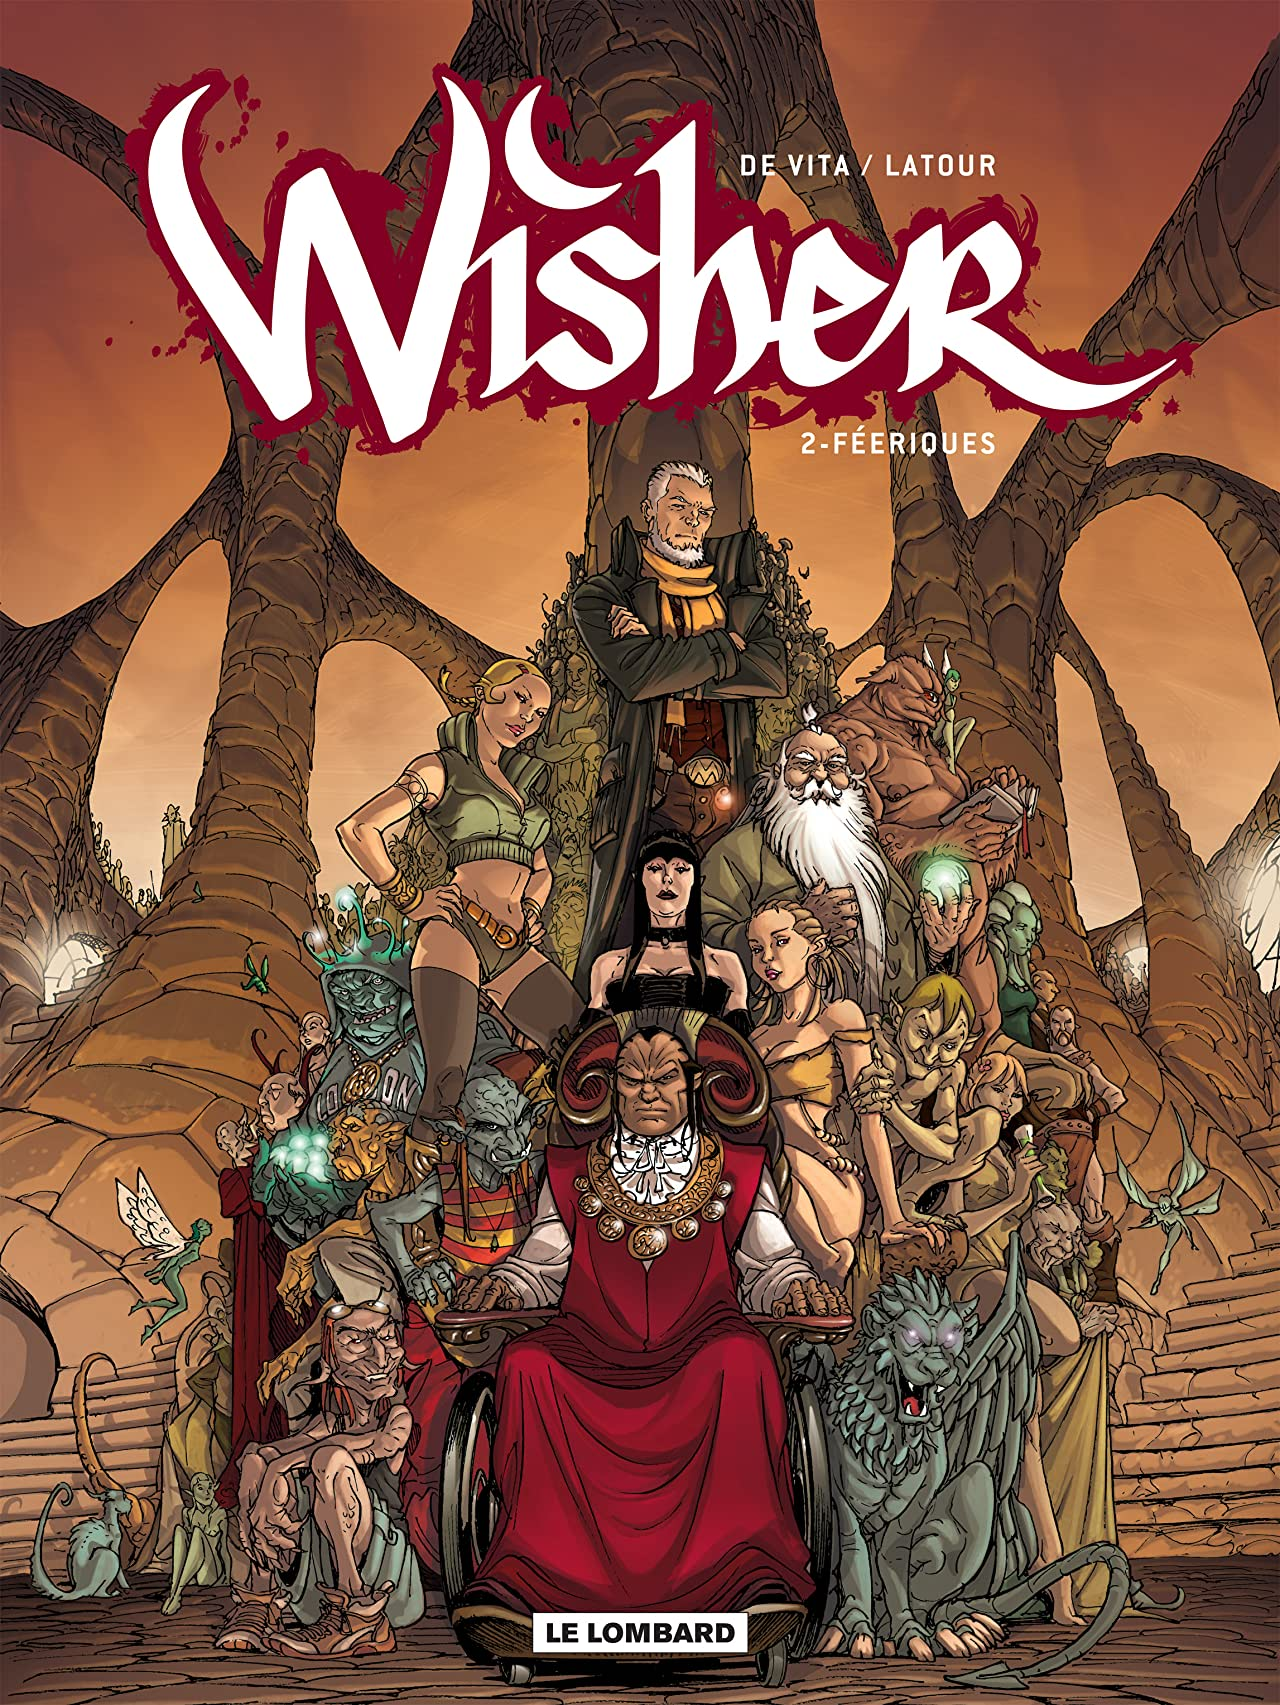 Wisher Vol. 2: Merlin